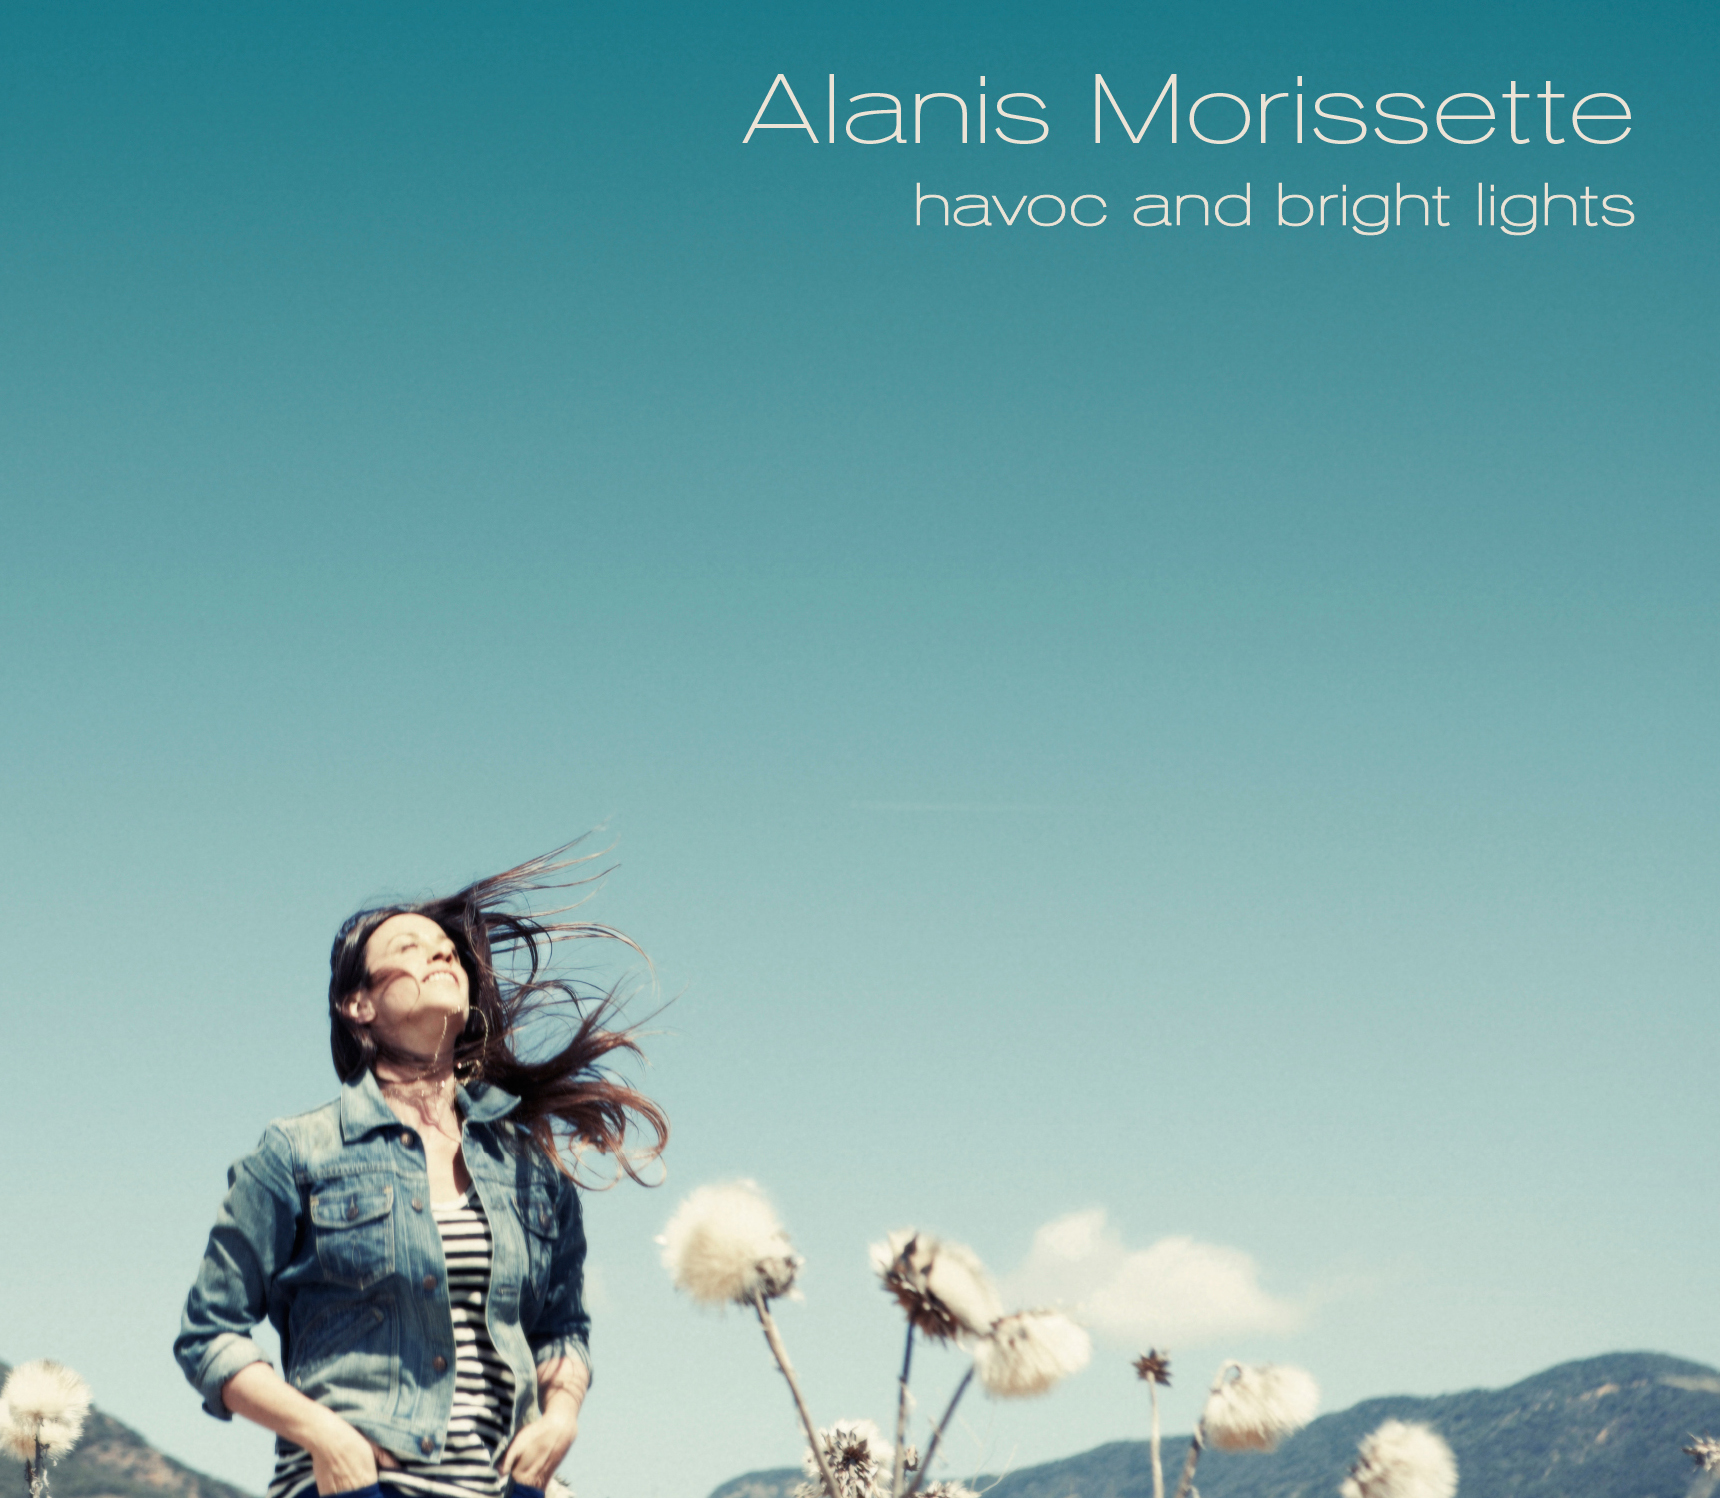 Alanis Morissette / Havoc and Bright Lights